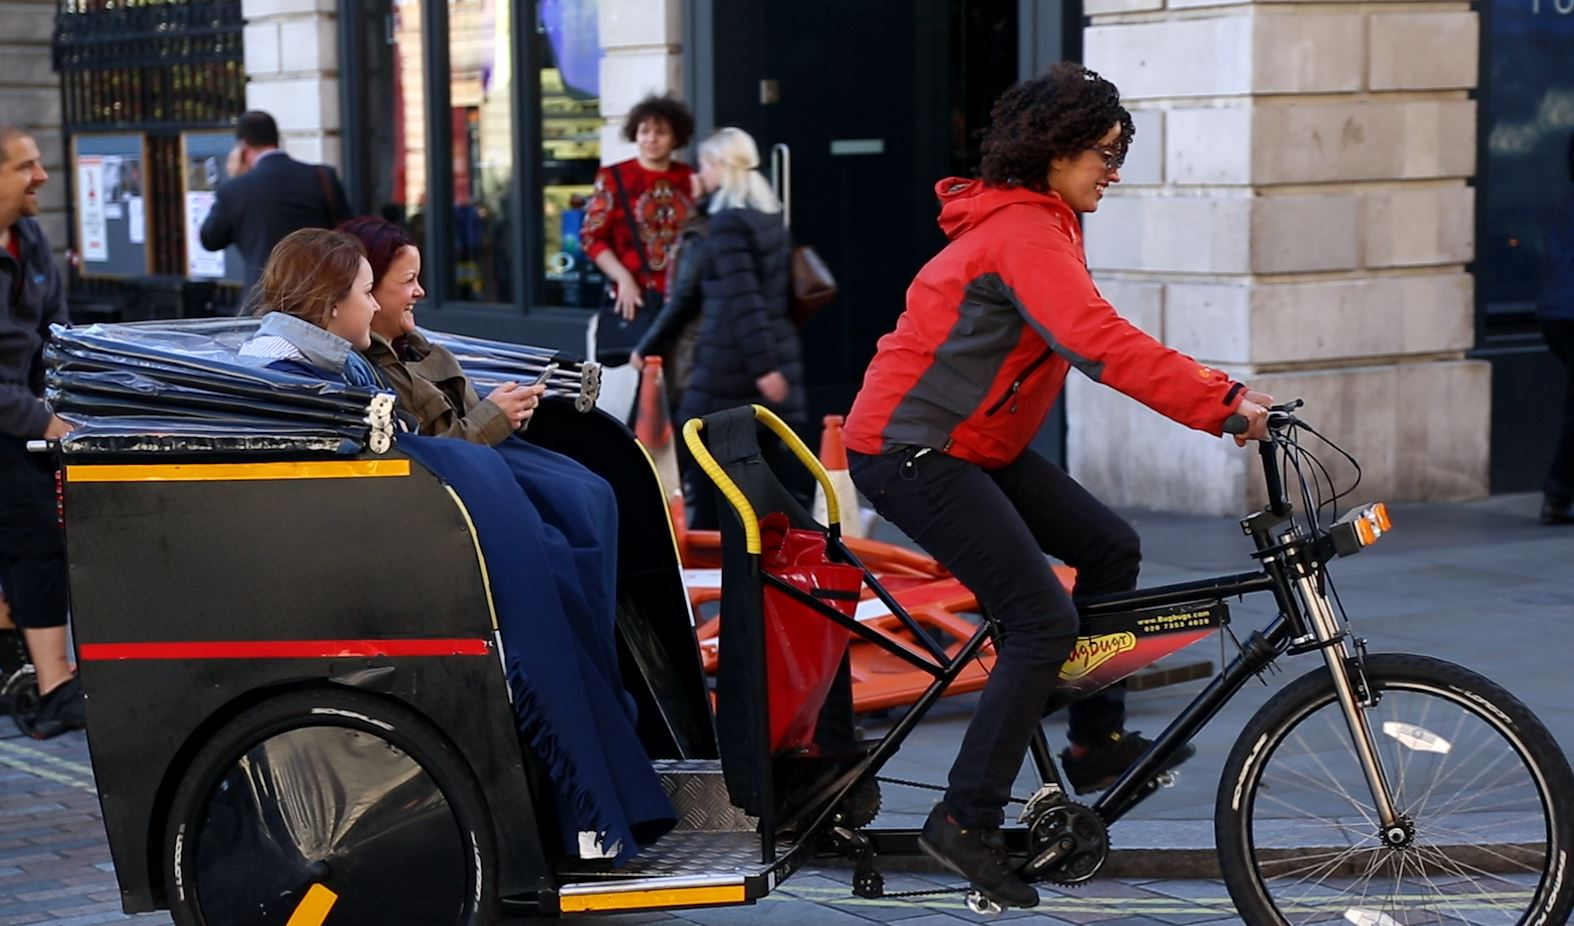 Rickshaws: A Scourge of London's Streets?